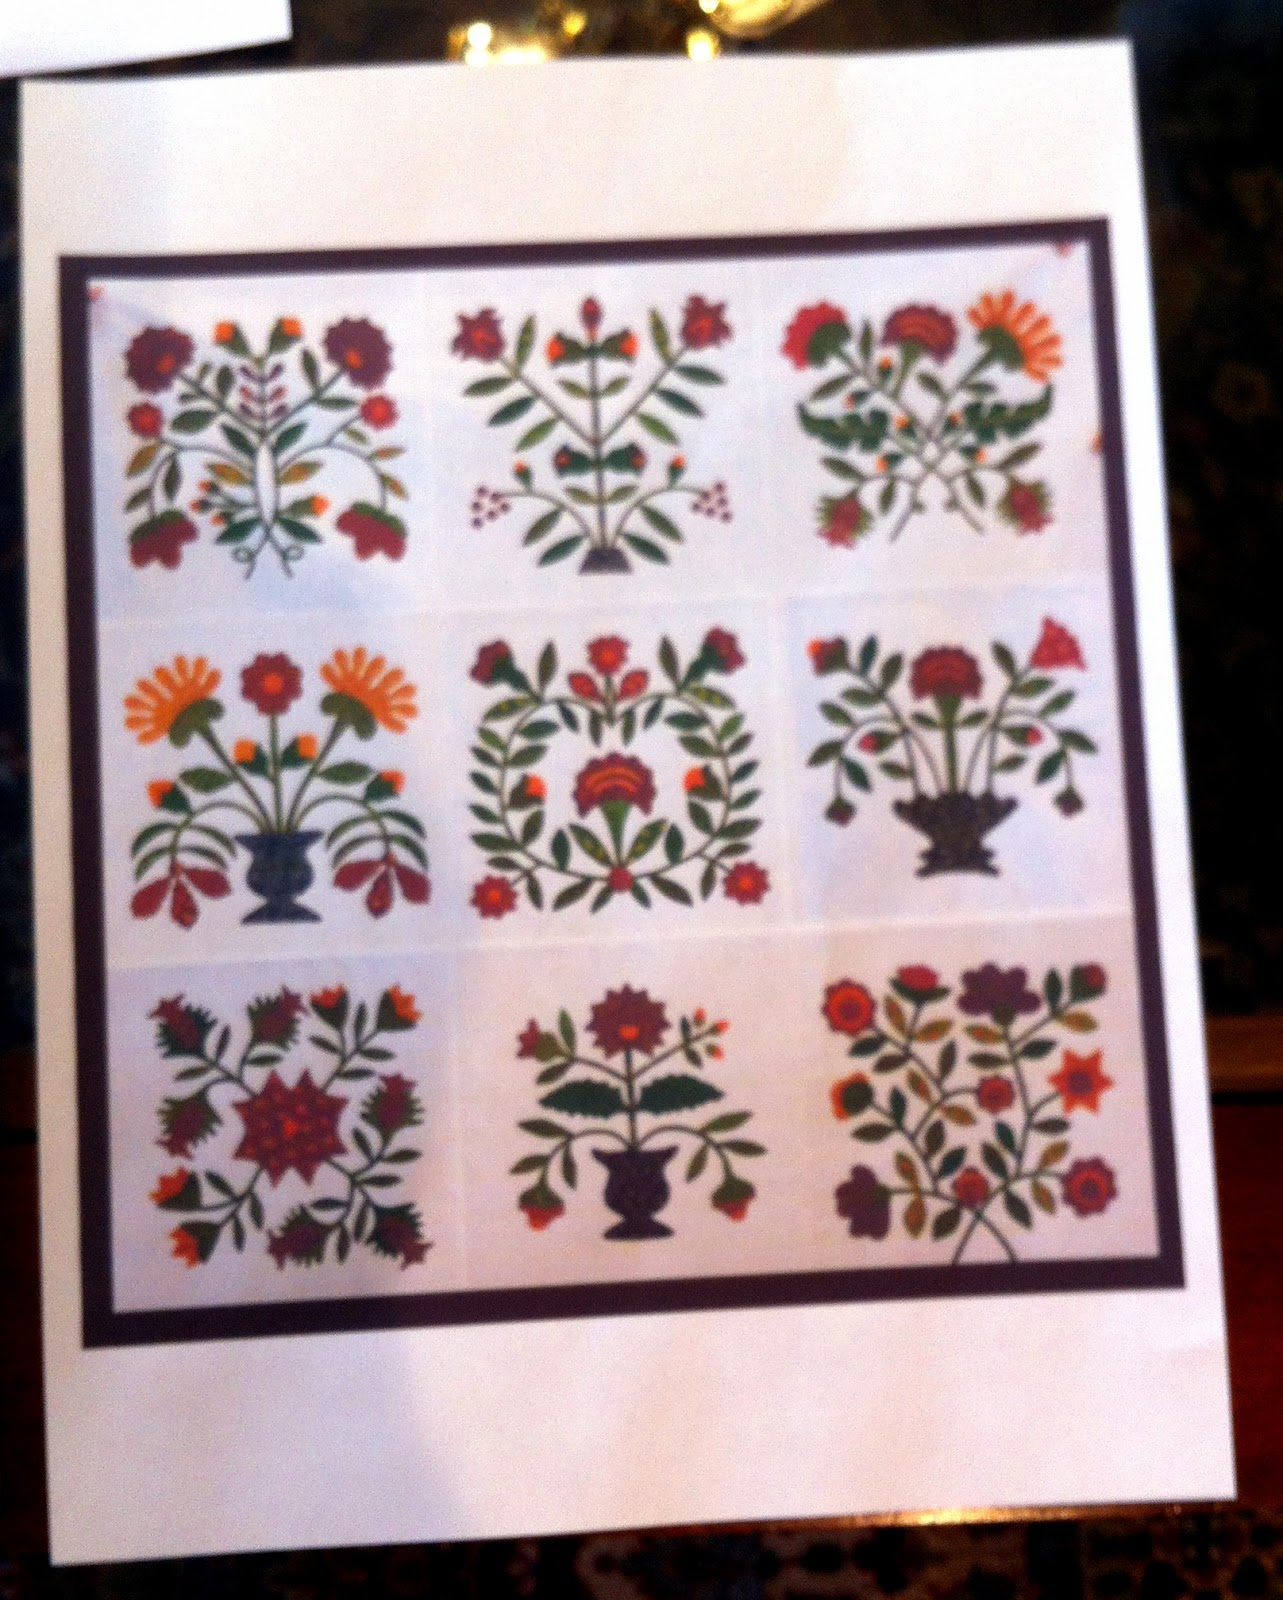 Calico Floral Print Peek-A-Boo Iron On Patches by Holey Patches 2-5 x 5